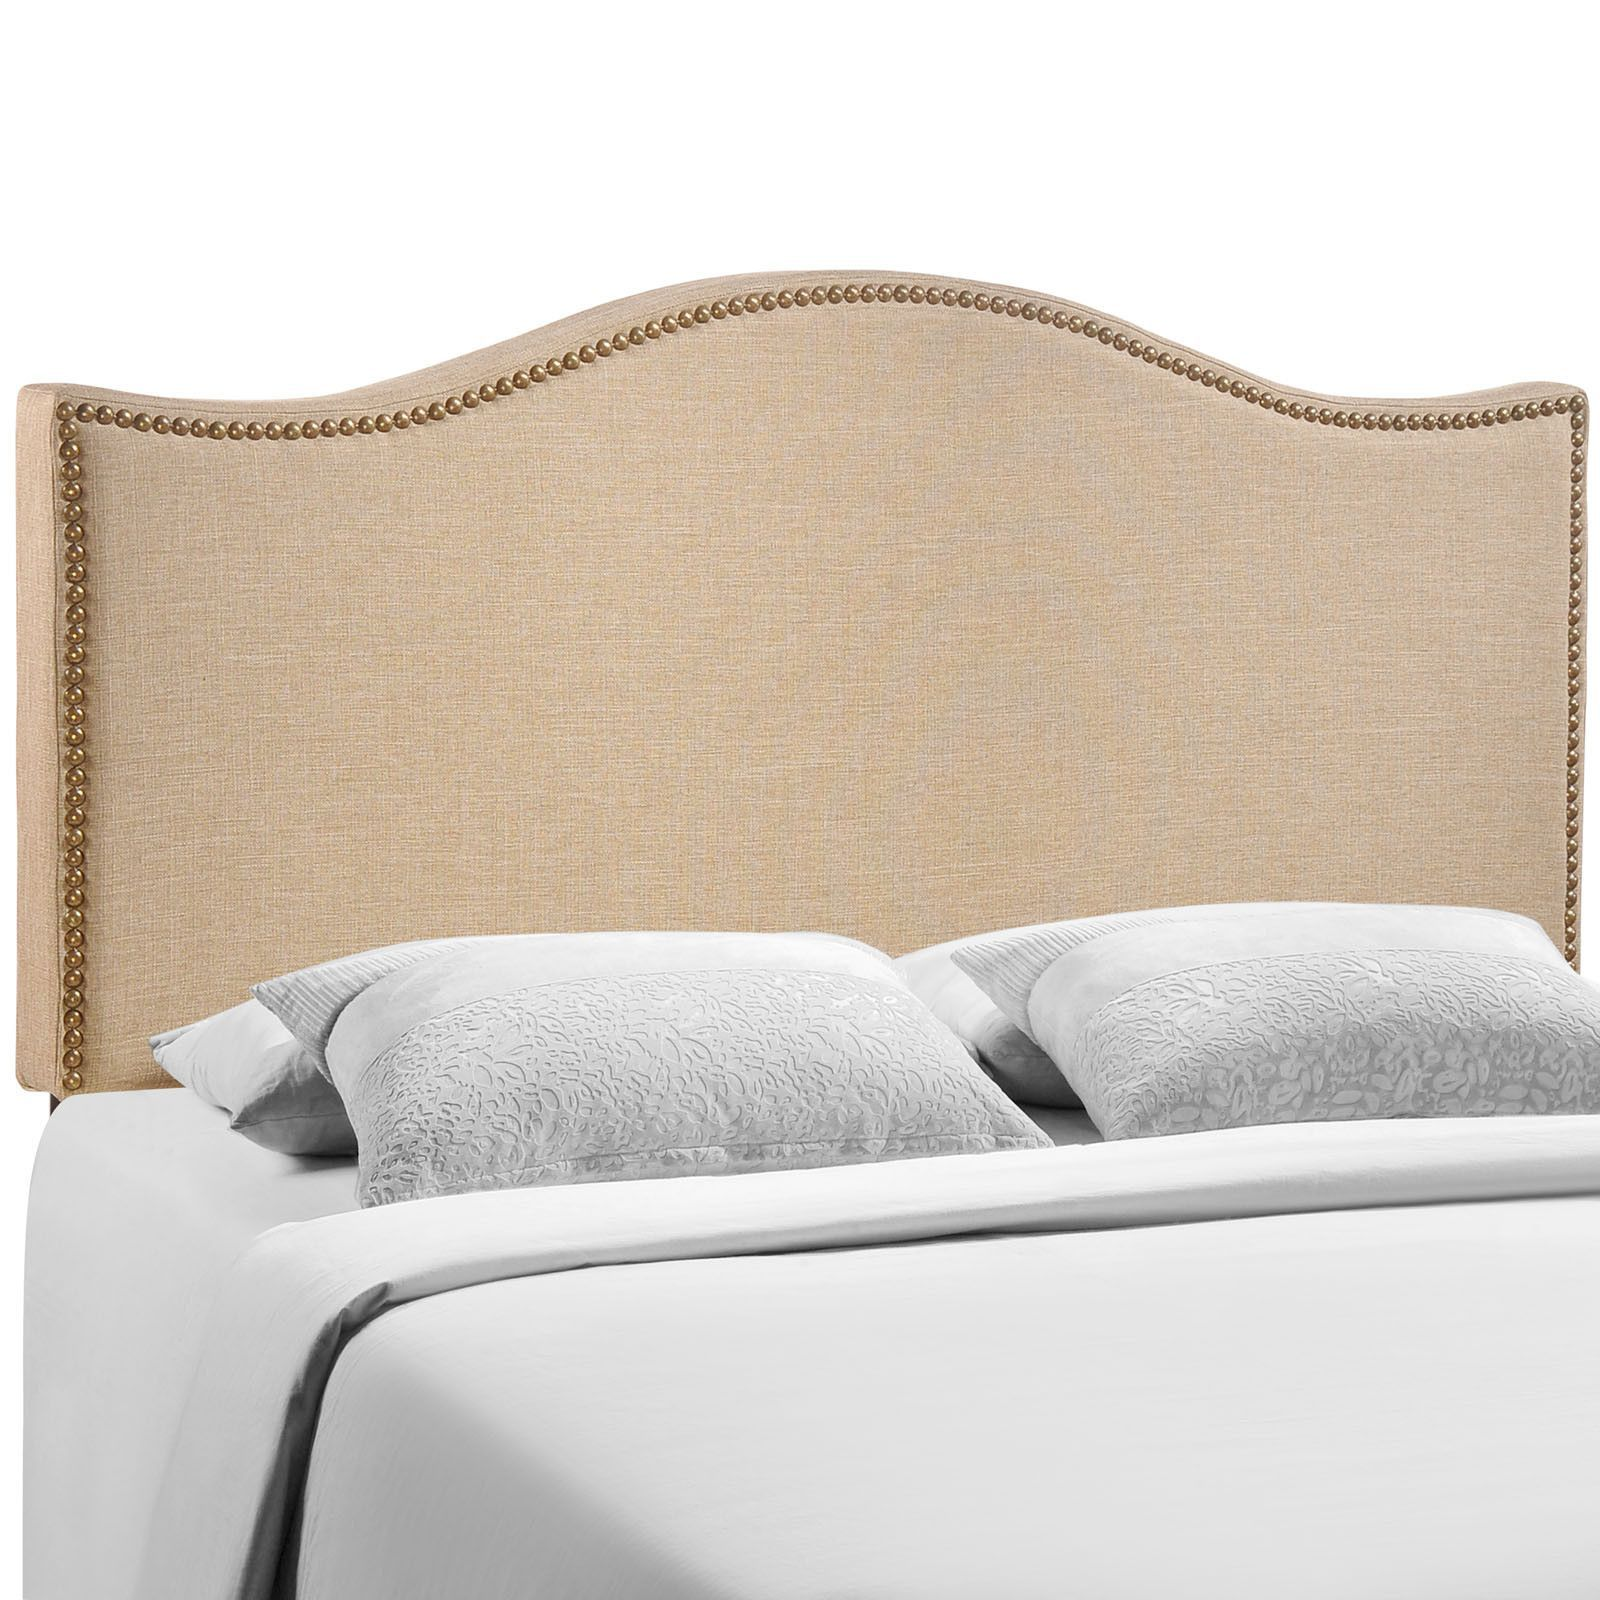 Buy Curl Queen Nailhead Upholstered Headboard at ModelDeco for only ...